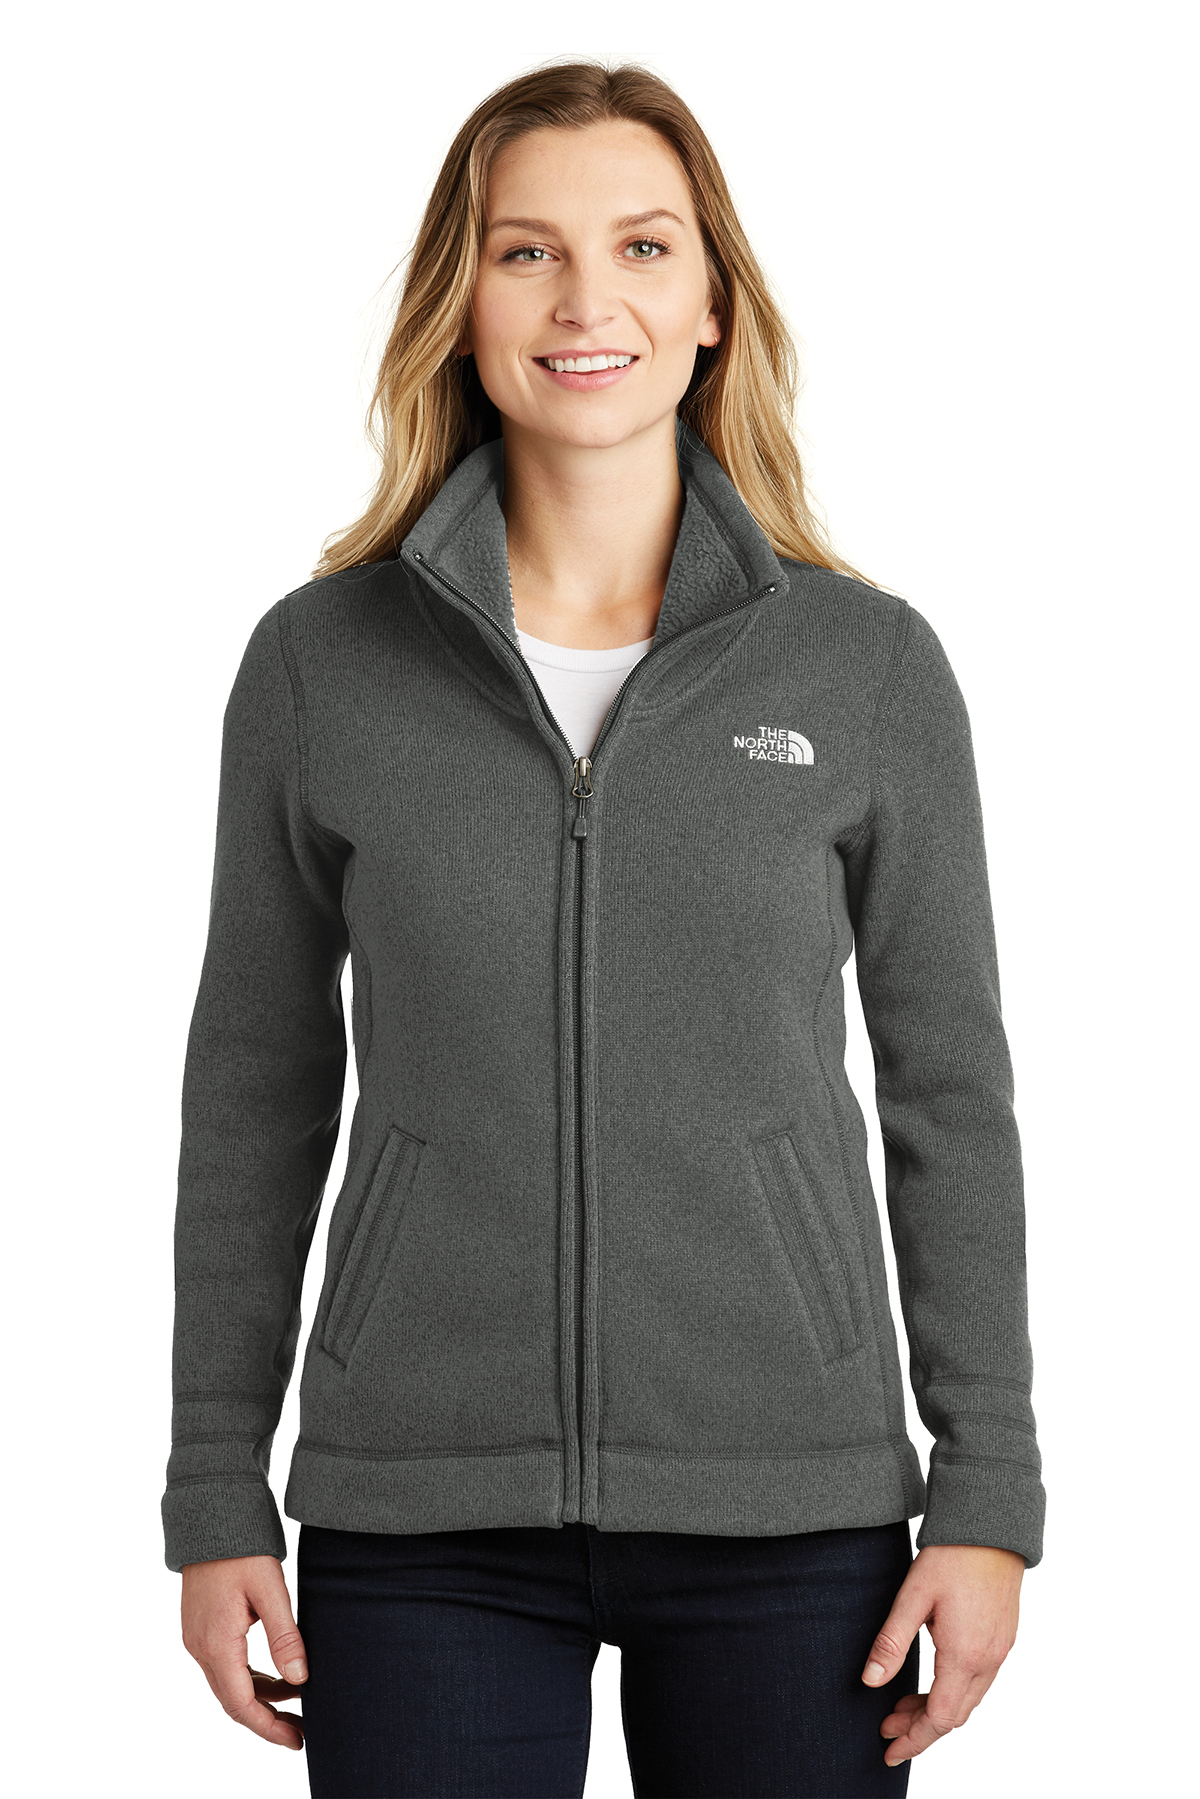 d030668f8 The North Face® Ladies Sweater Fleece Jacket | Sweatshirts/Fleece ...